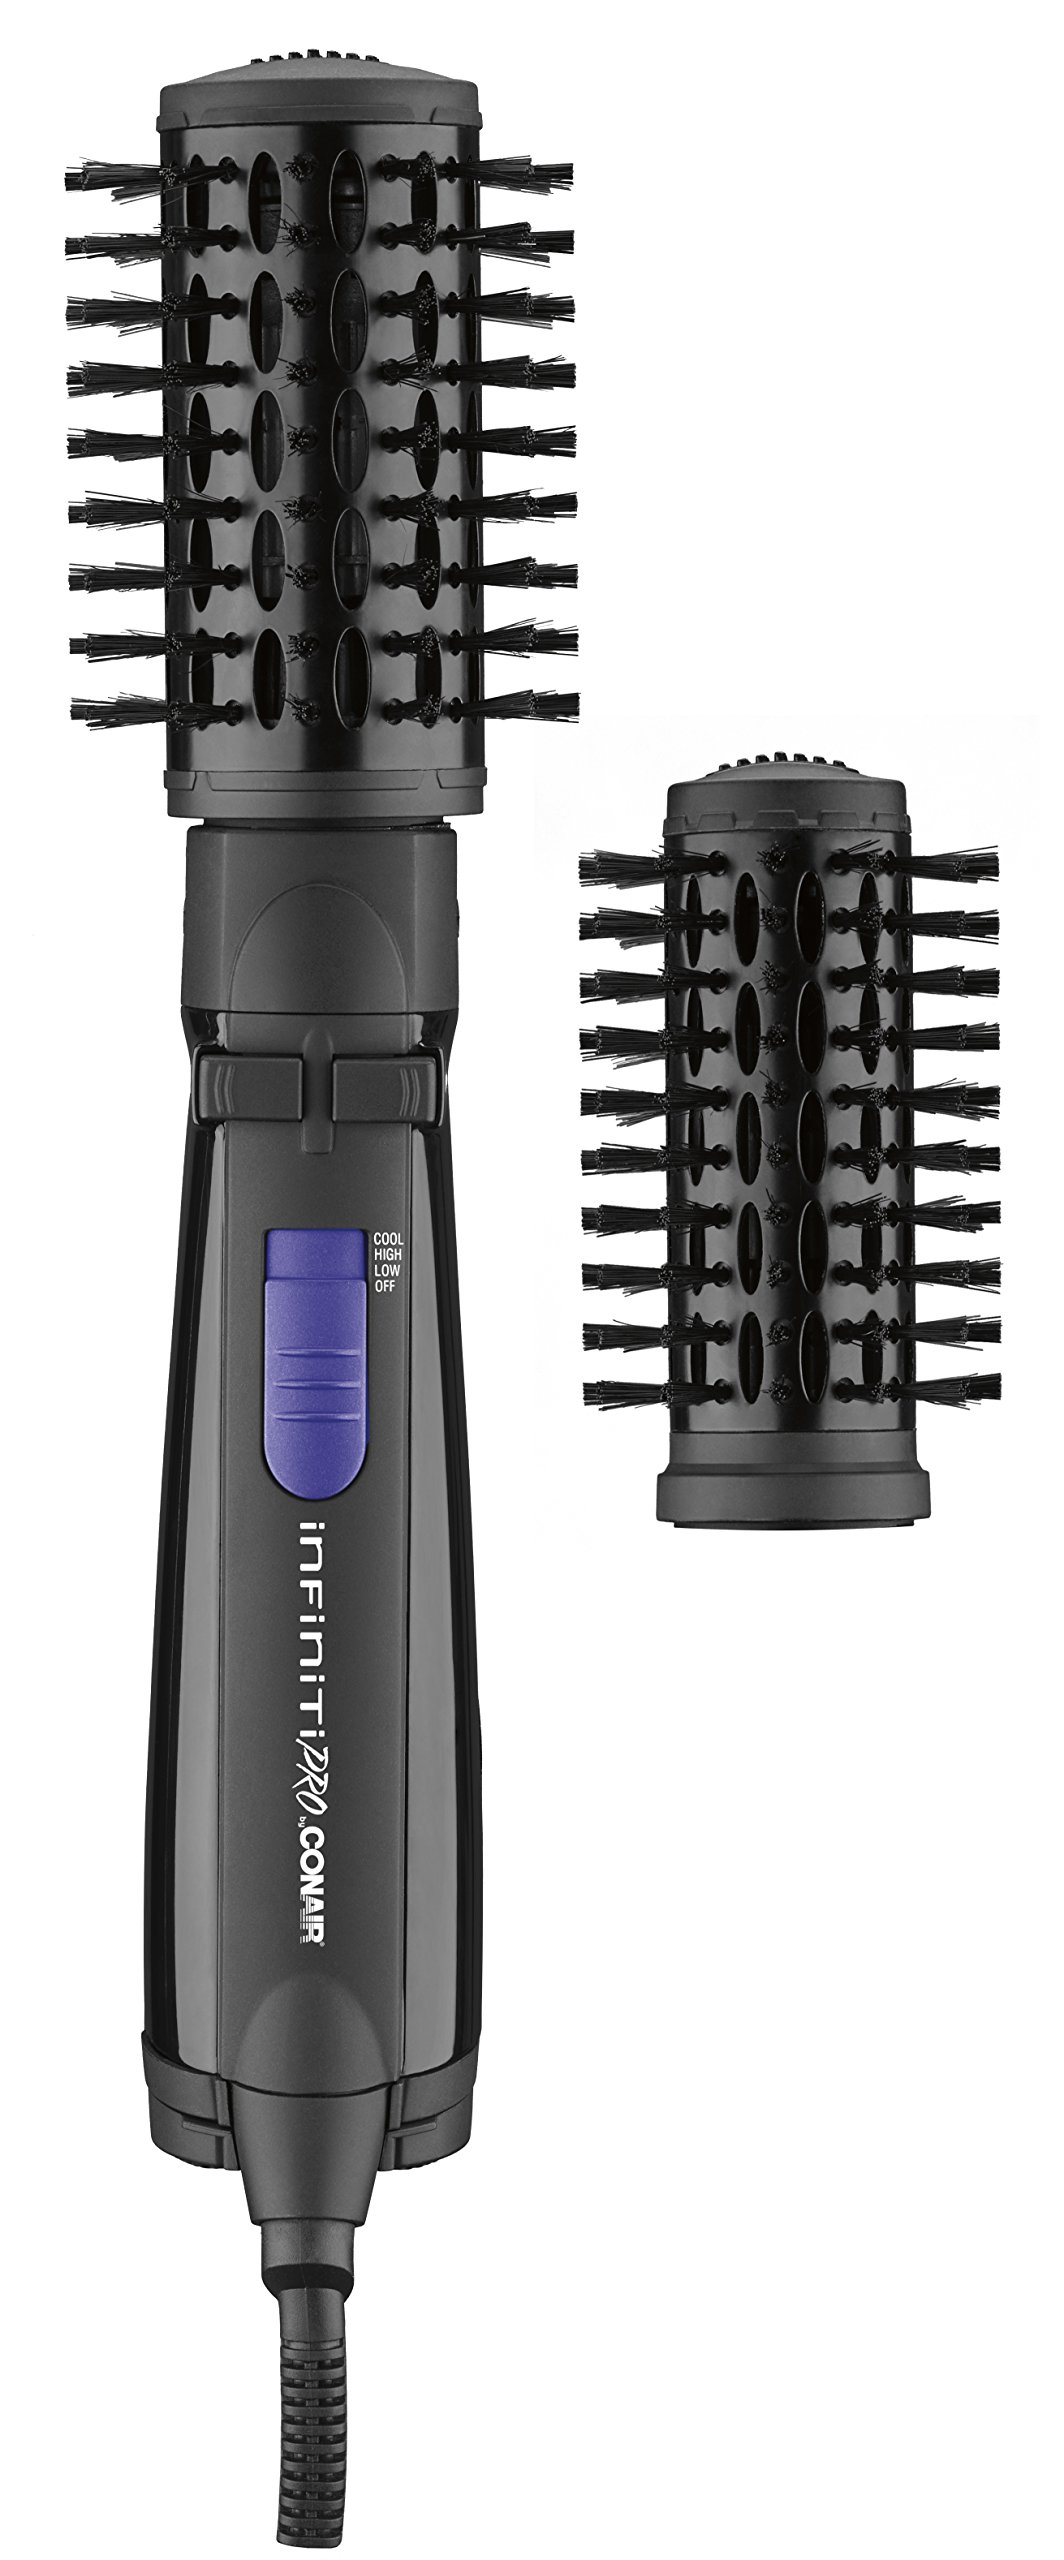 INFINITIPRO BY CONAIR Spin Air Rotating Styler/Hot Air Brush; 2-inch AND 1 1/2-inch; Black by Conair